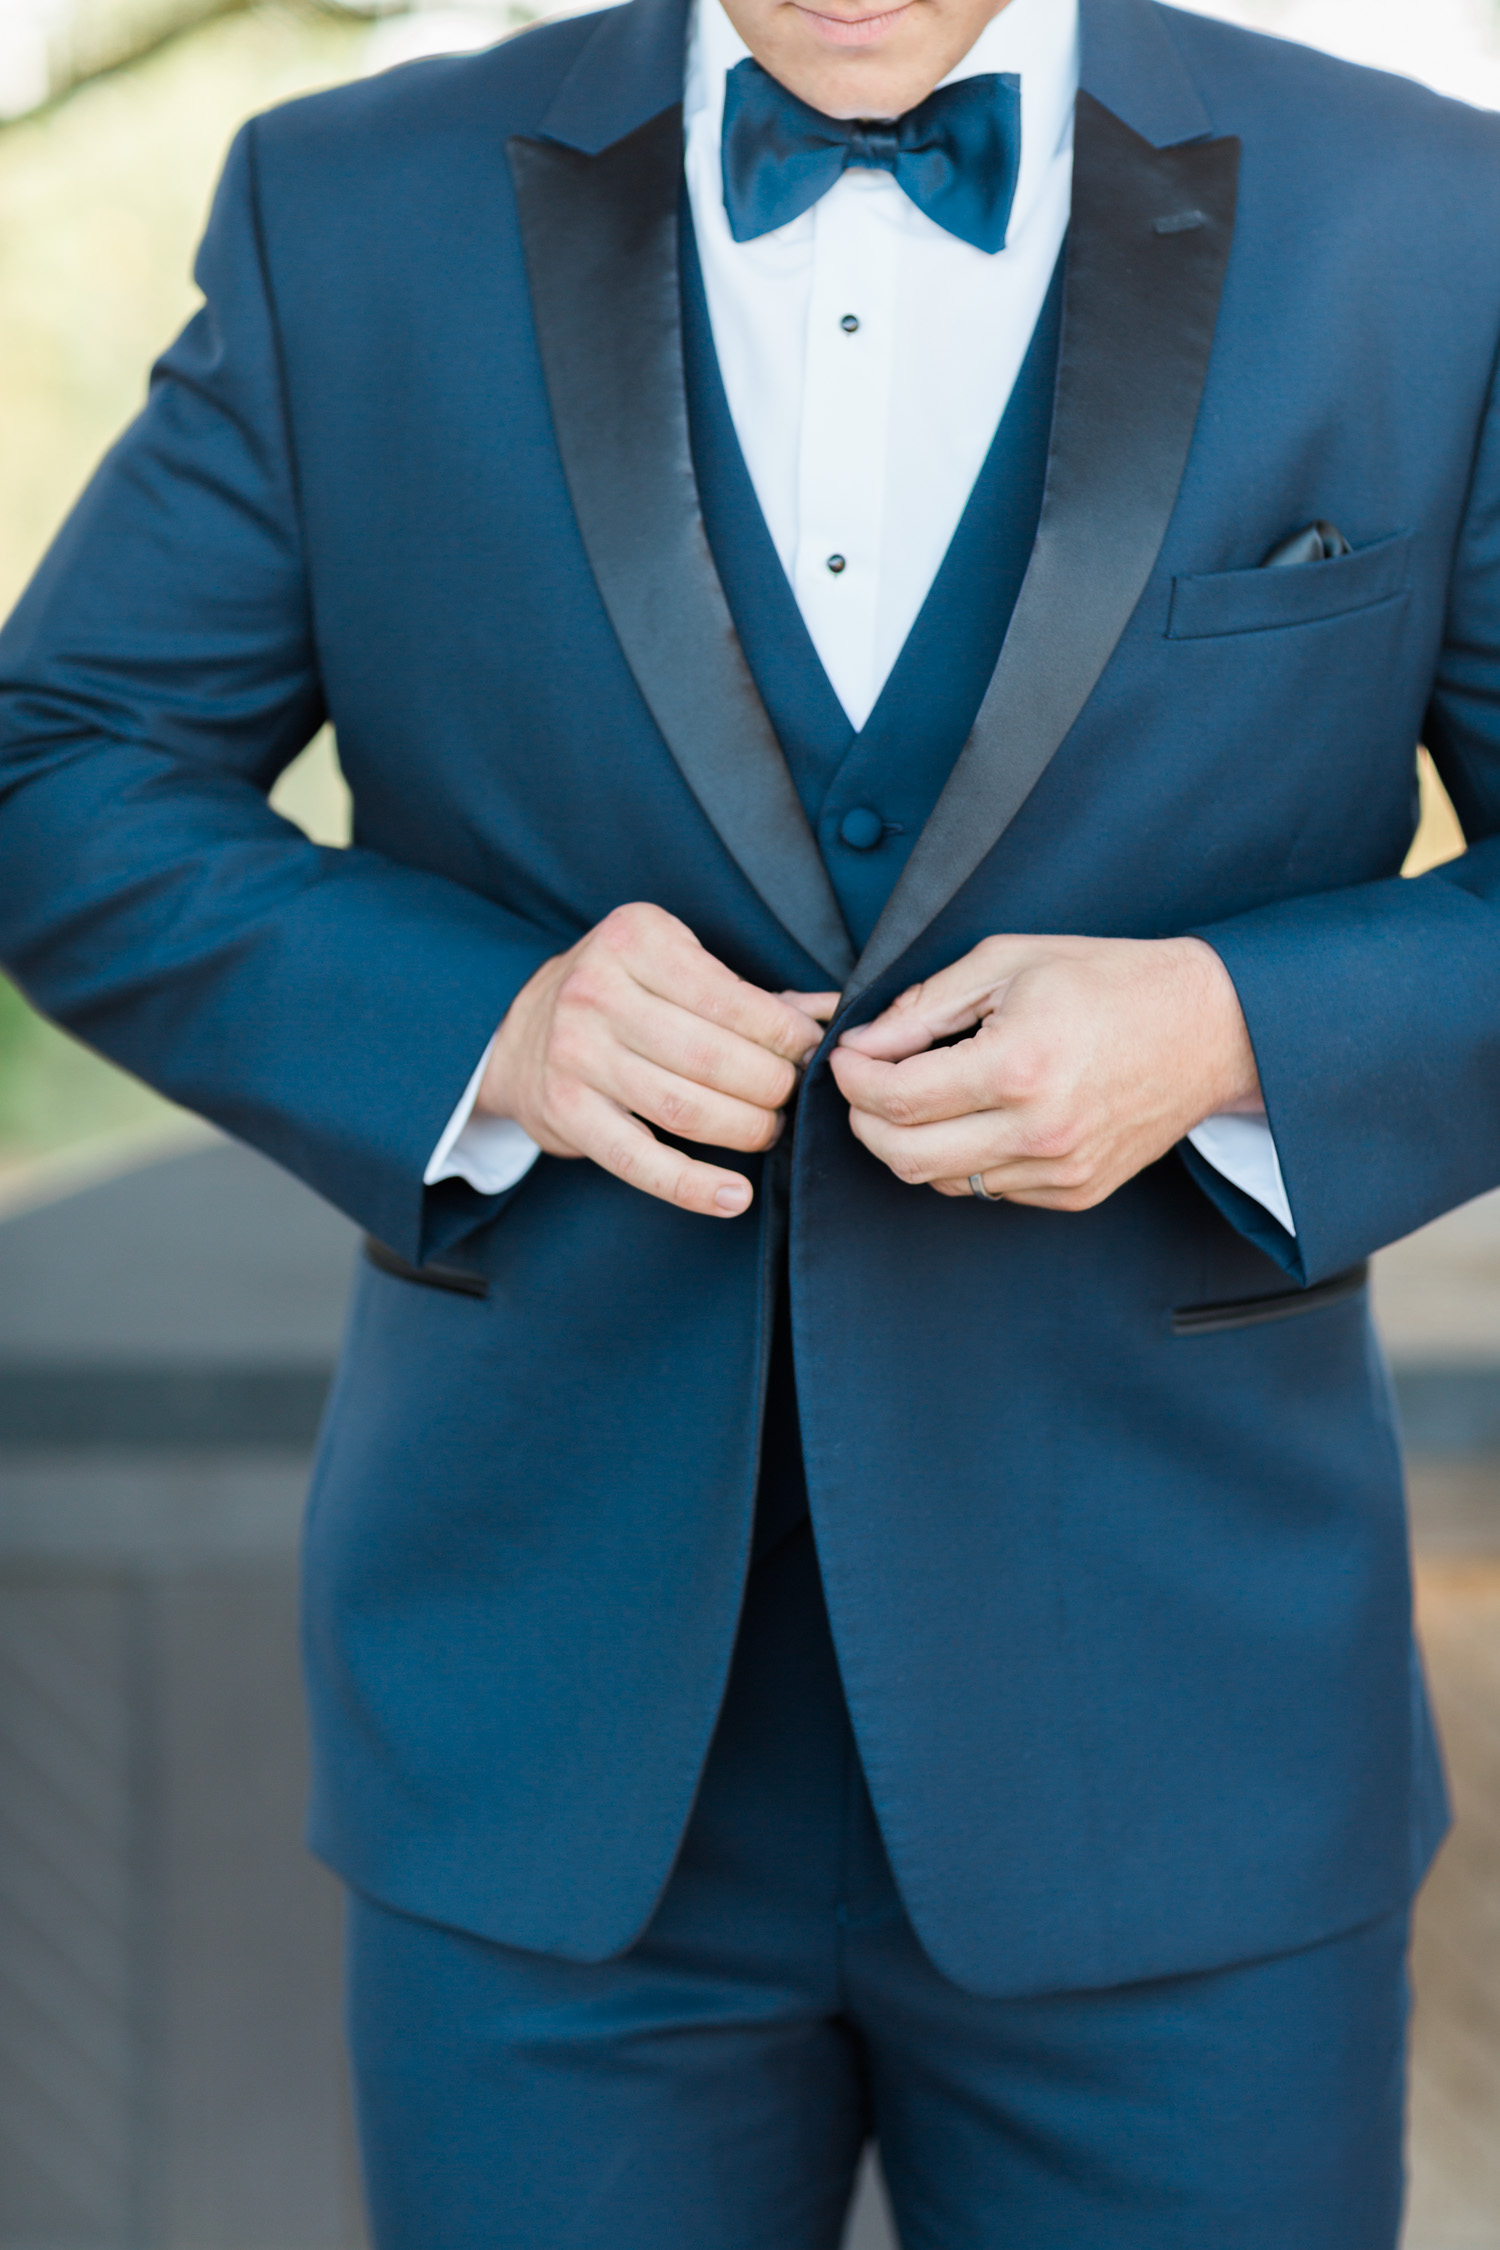 Groom in navy, buttoning hus tuxedo jacket